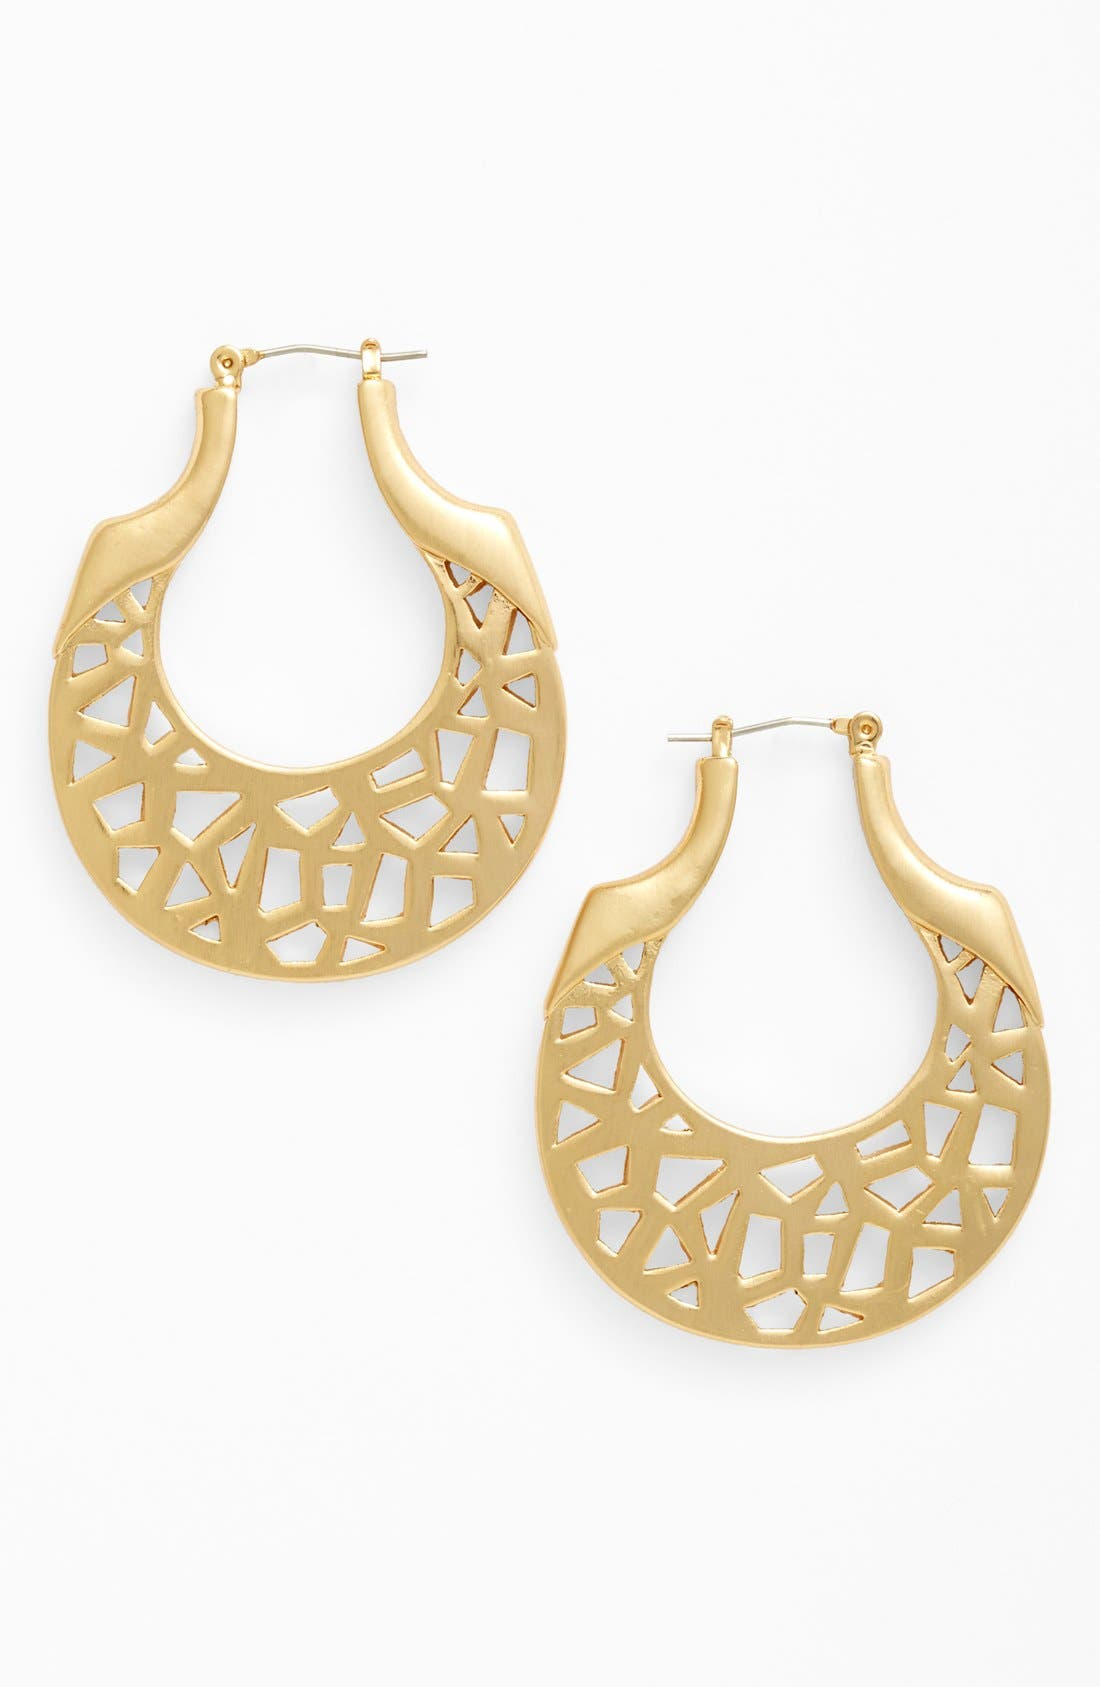 Main Image - Vince Camuto 'Mosaic Cut Out' Hoop Earrings